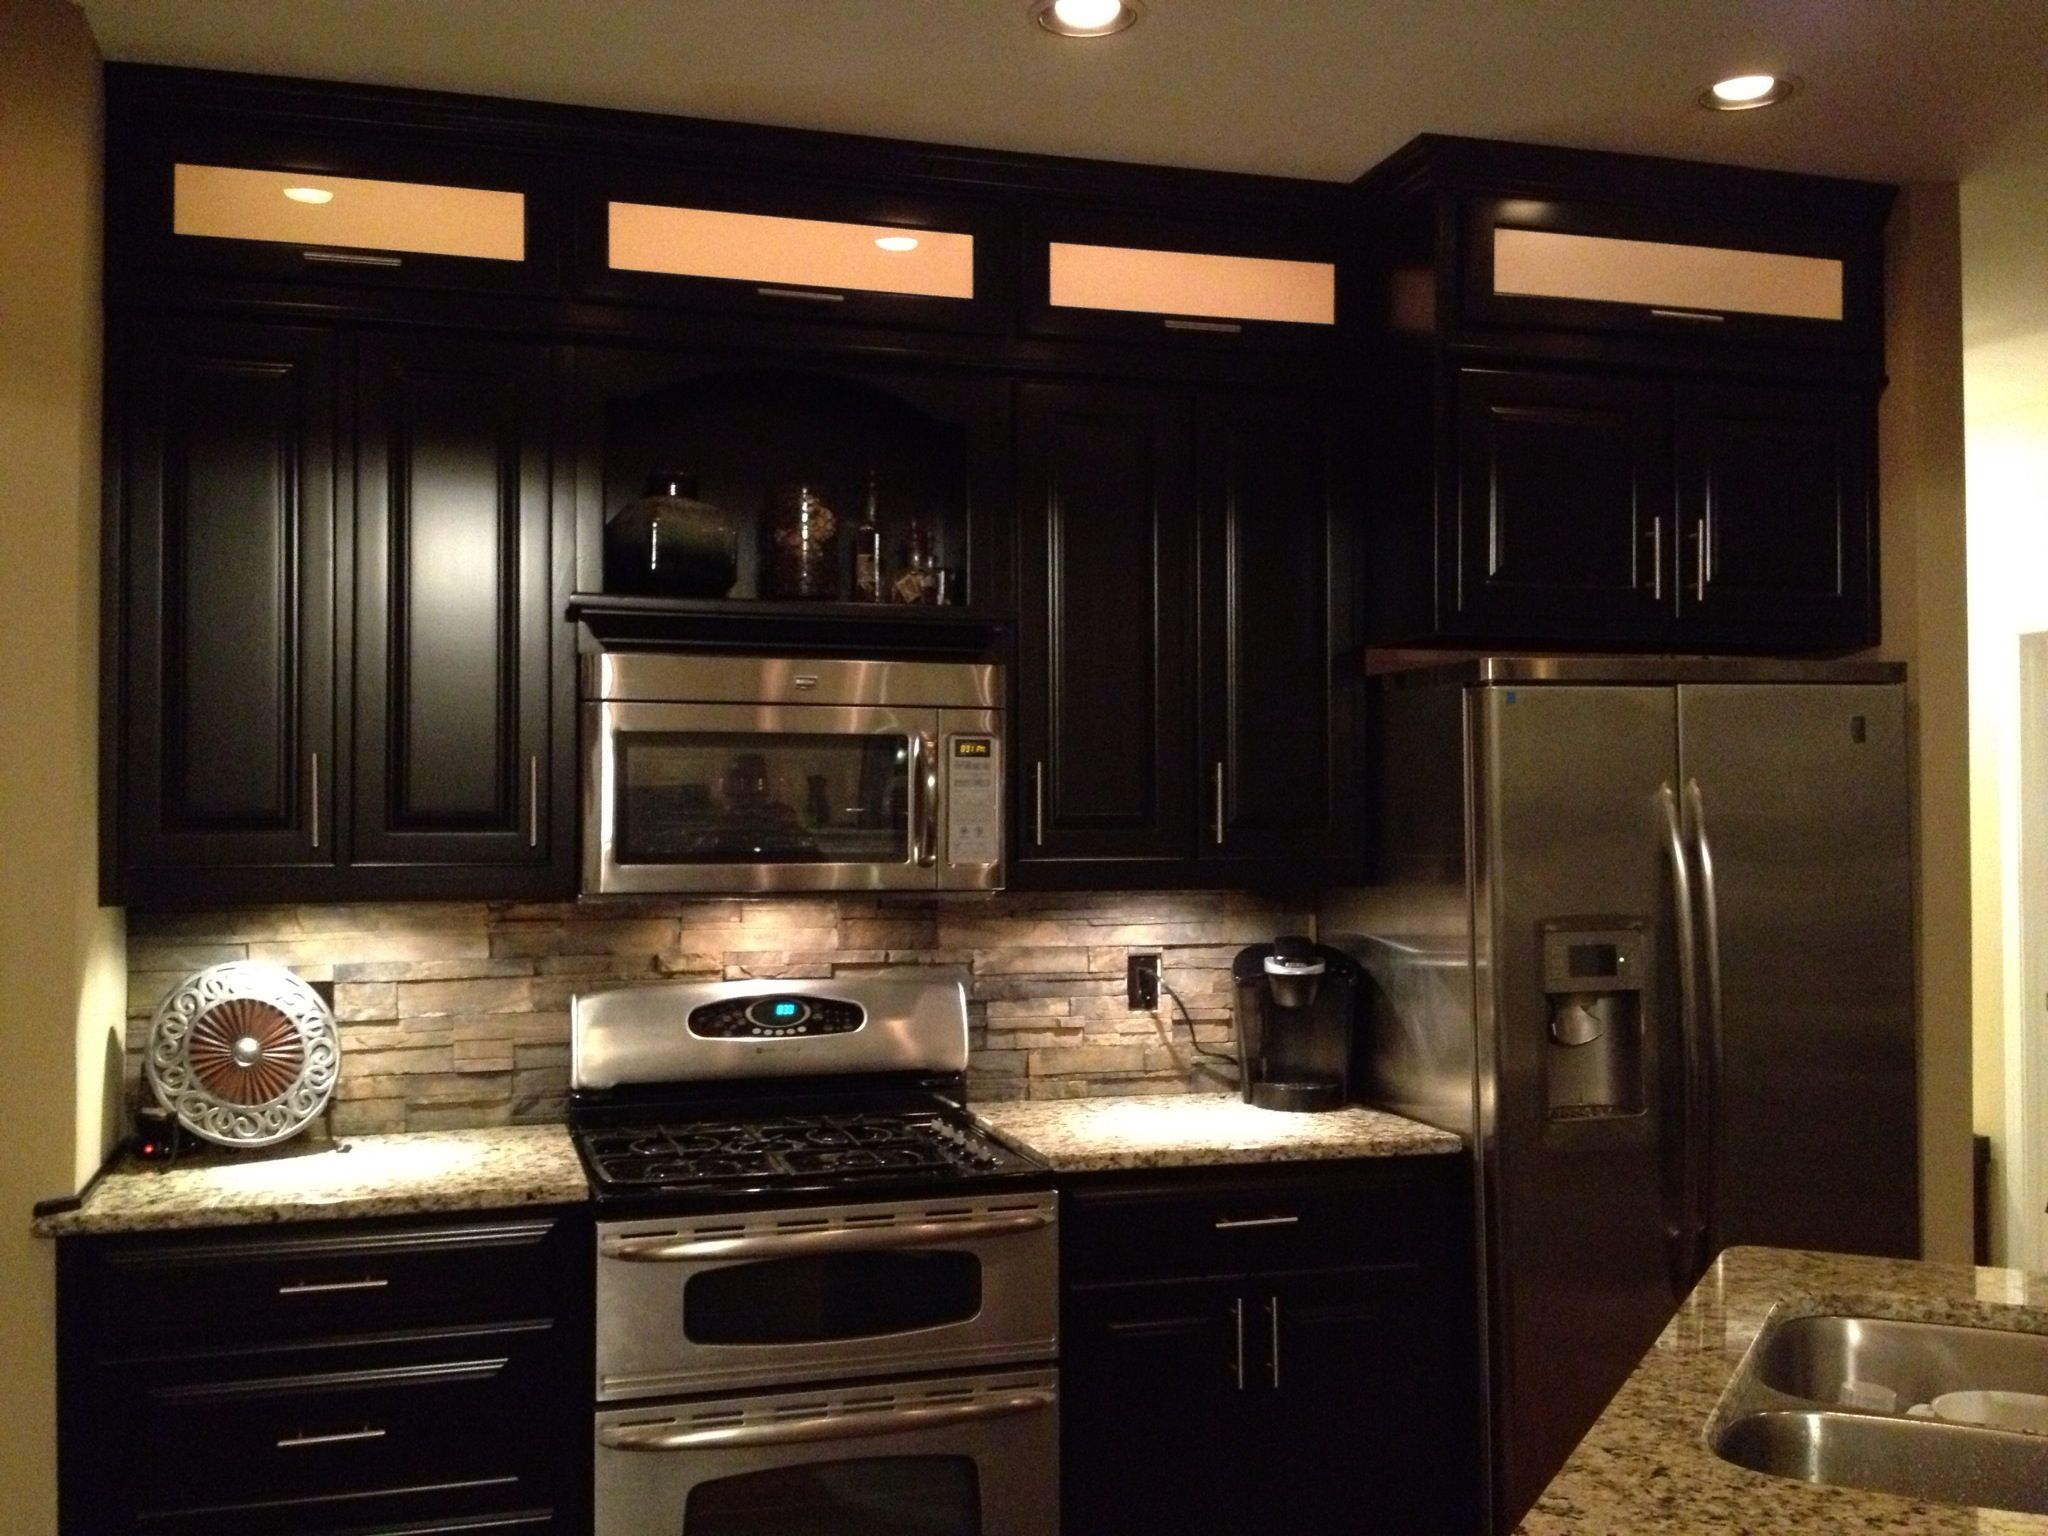 Captivating Espresso Cabinets, Light Granite Stacked Rock Backsplash With In Cabinet  And Under Cabinet Lighting.